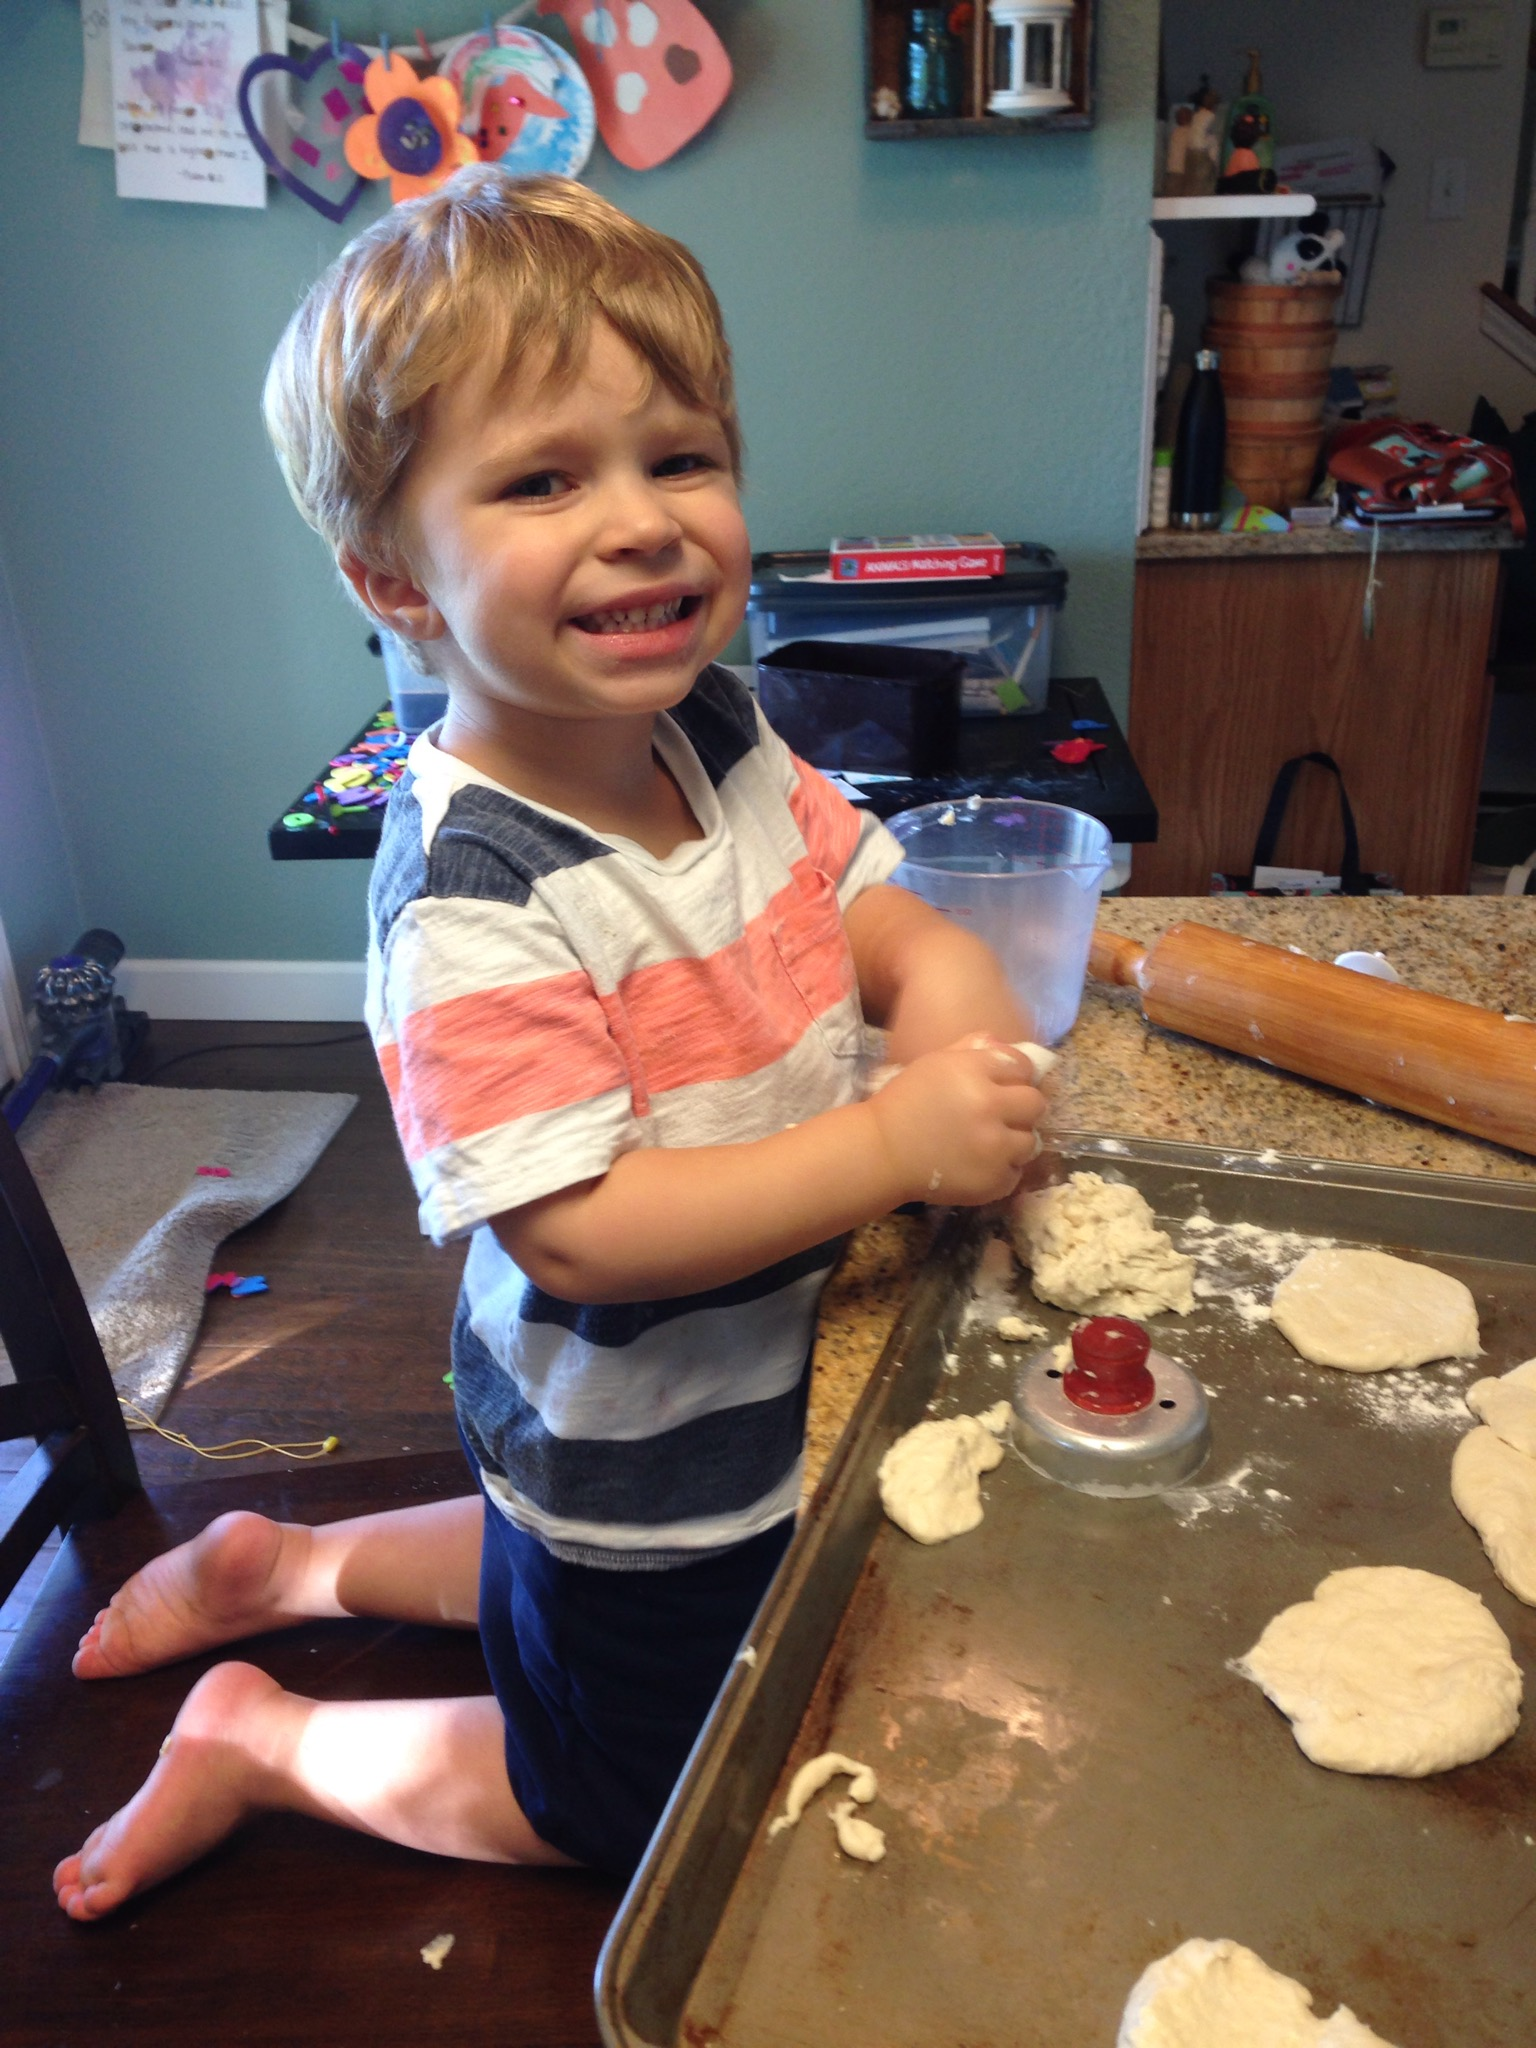 Sawyer making biscuits with Mommy